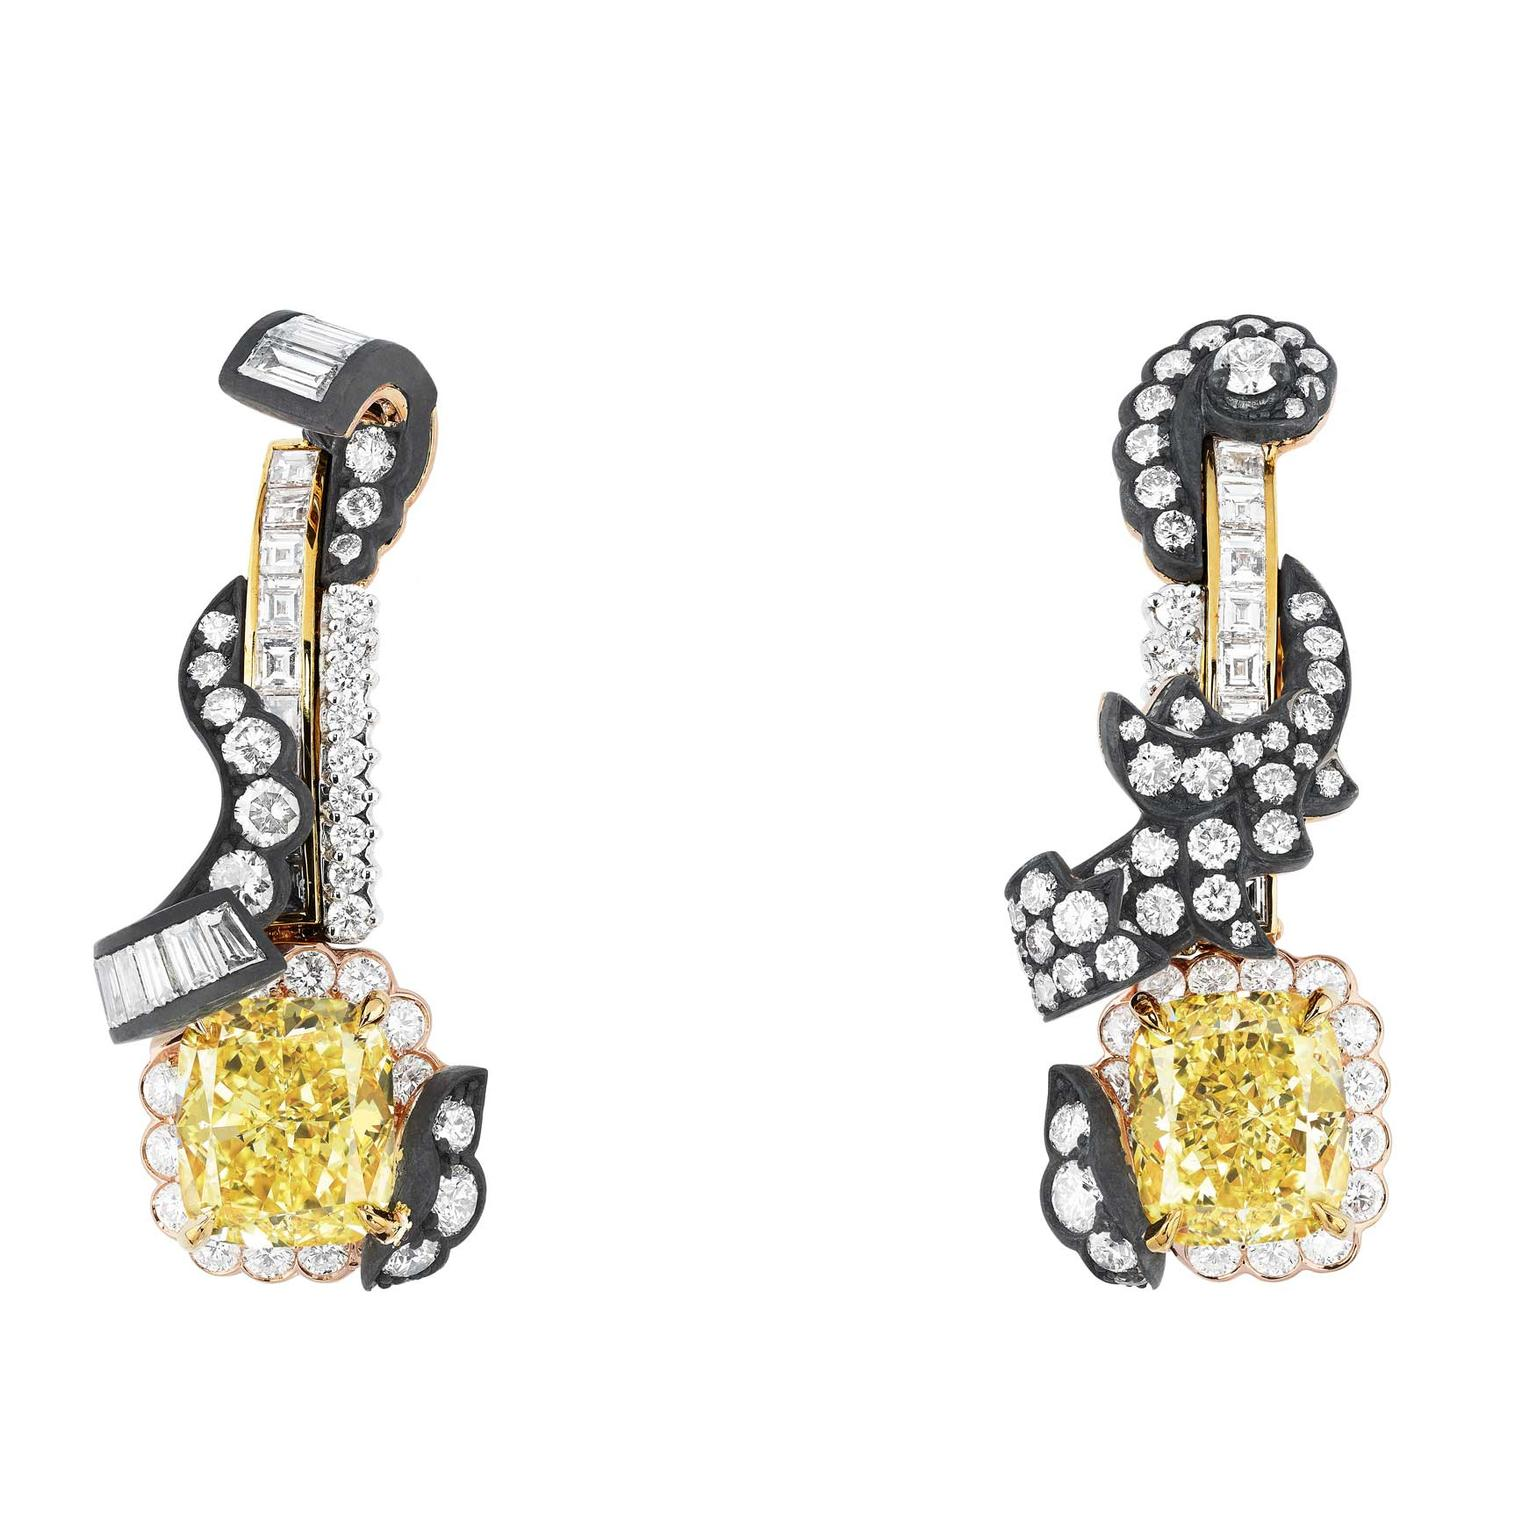 Dior à Versailles Boiserie Diamant Jaune white and yellow diamond earrings